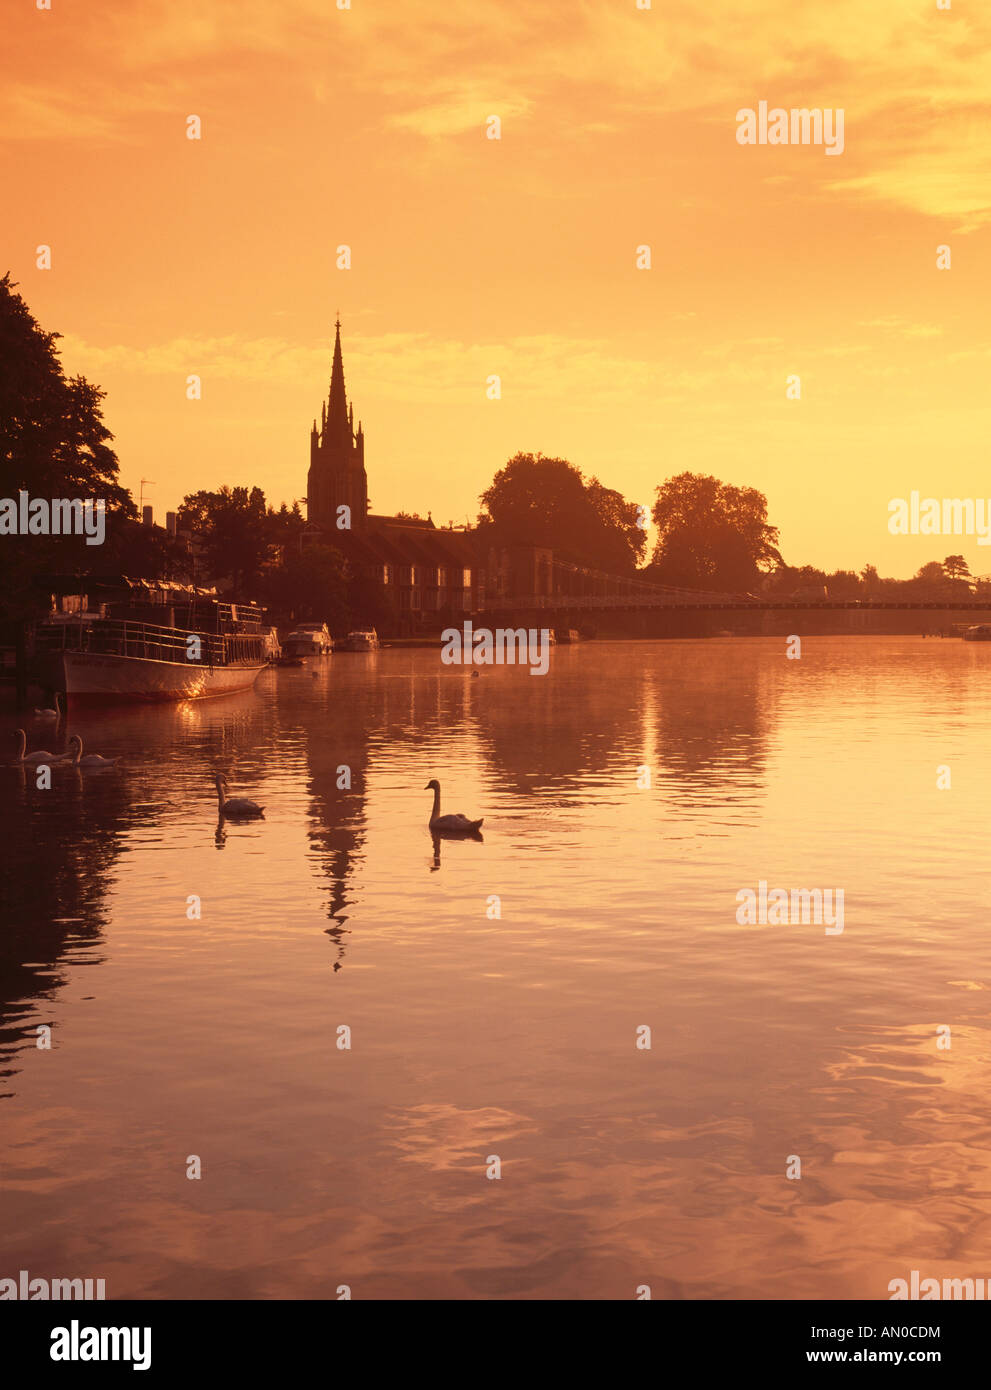 marlow, river thames, england Stock Photo